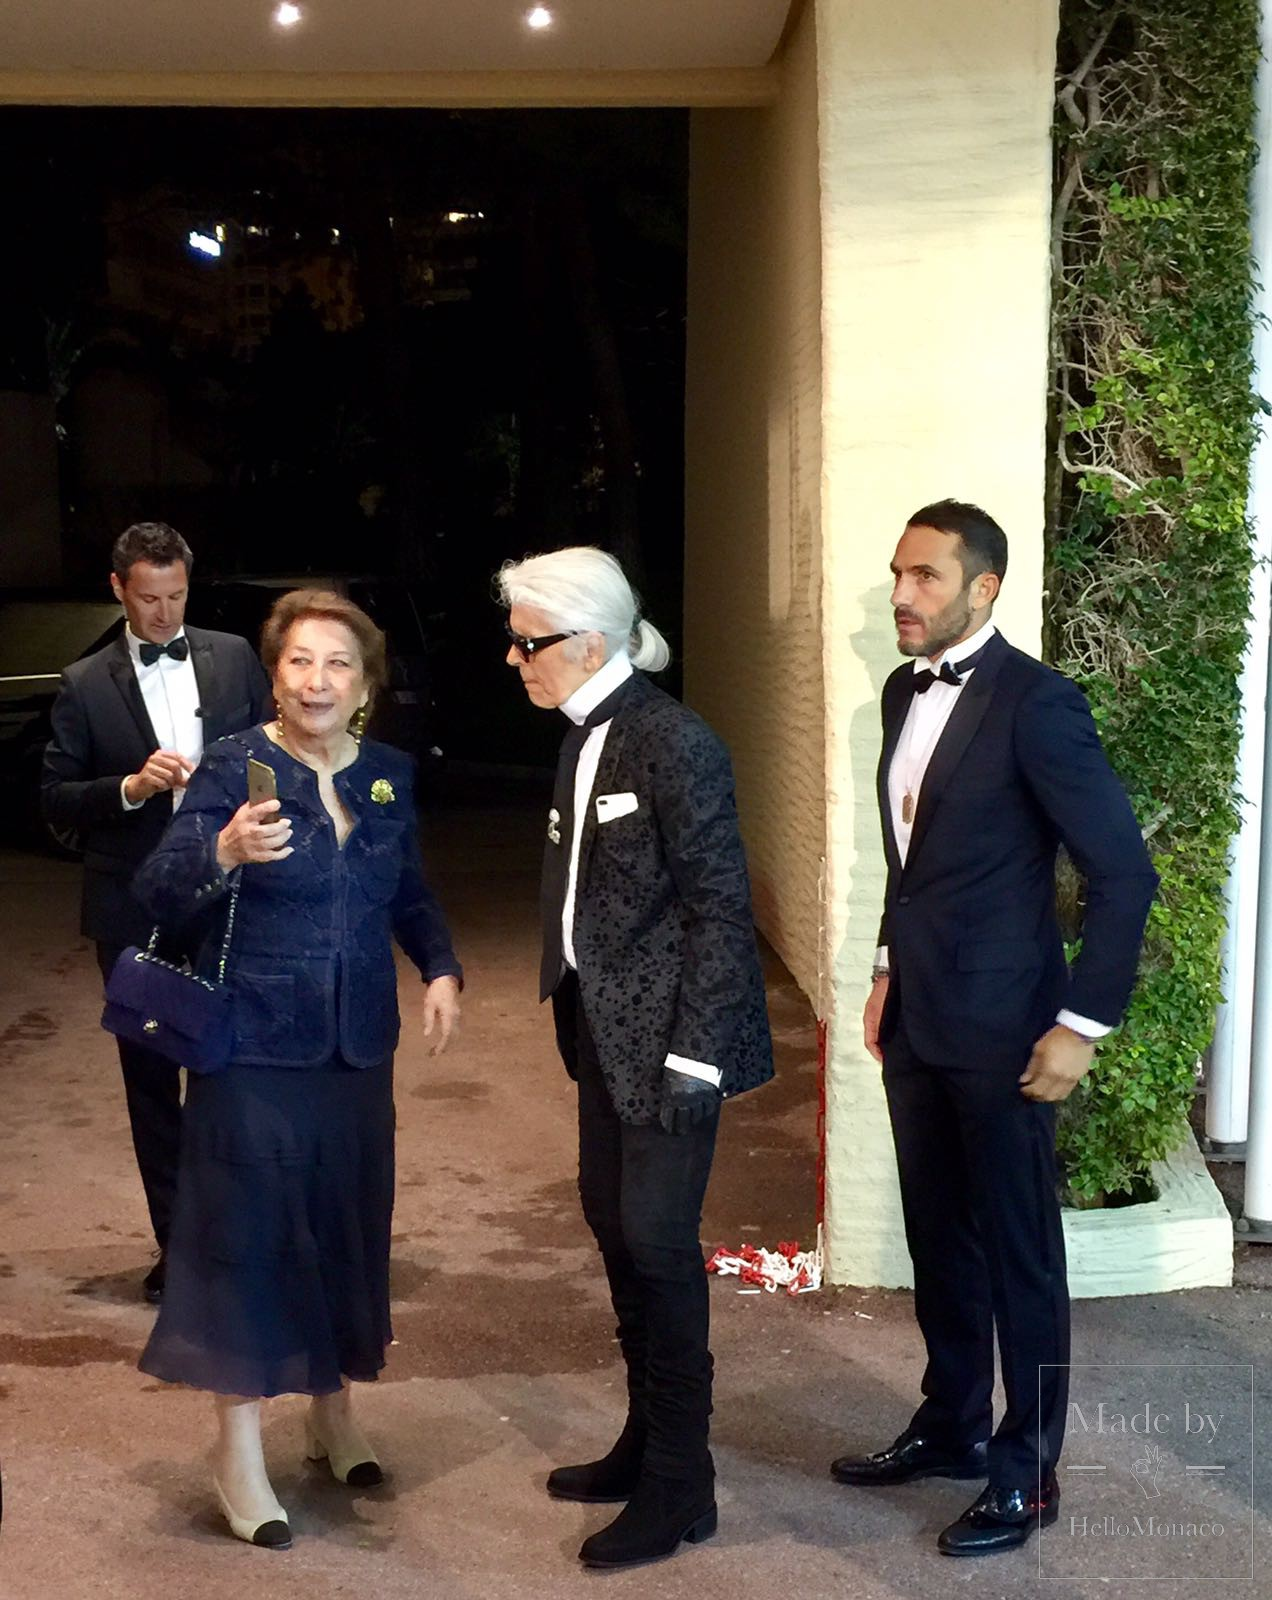 Karl Lagerfeld at the Rose Ball 2017